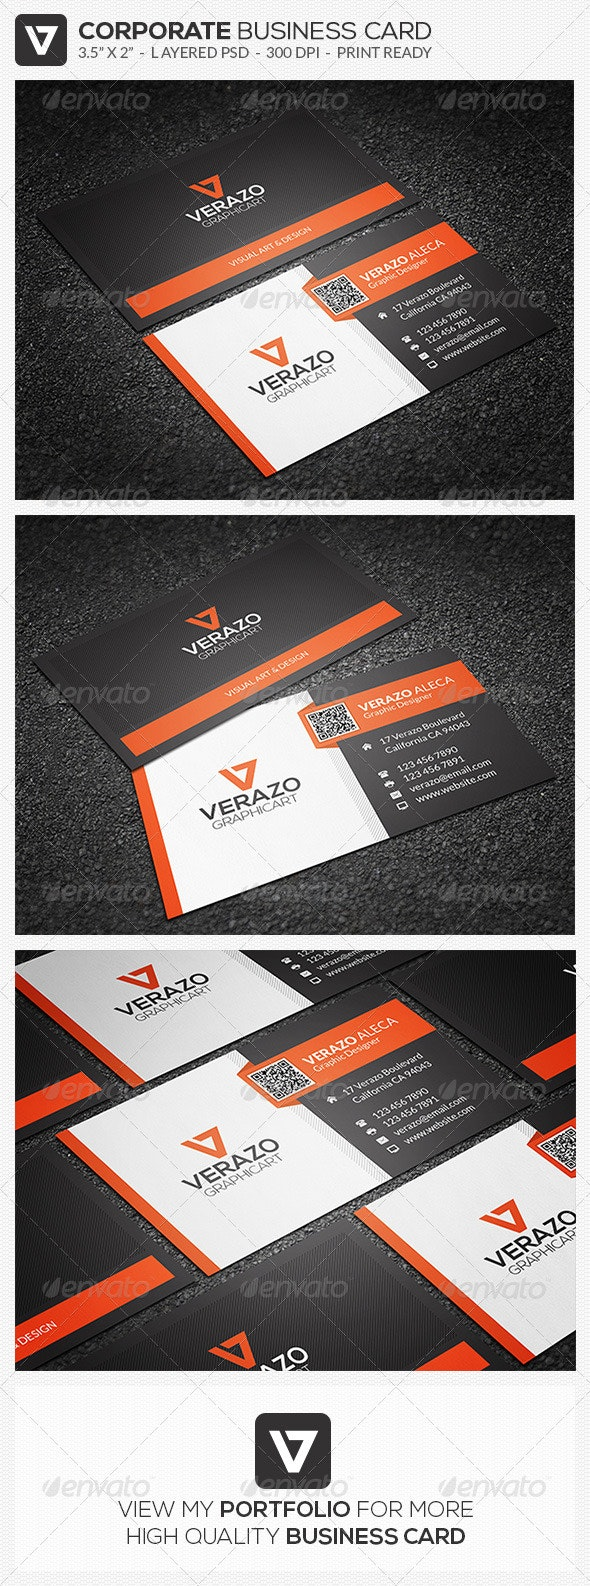 Modern Corporate Business Card 44 - Corporate Business Cards